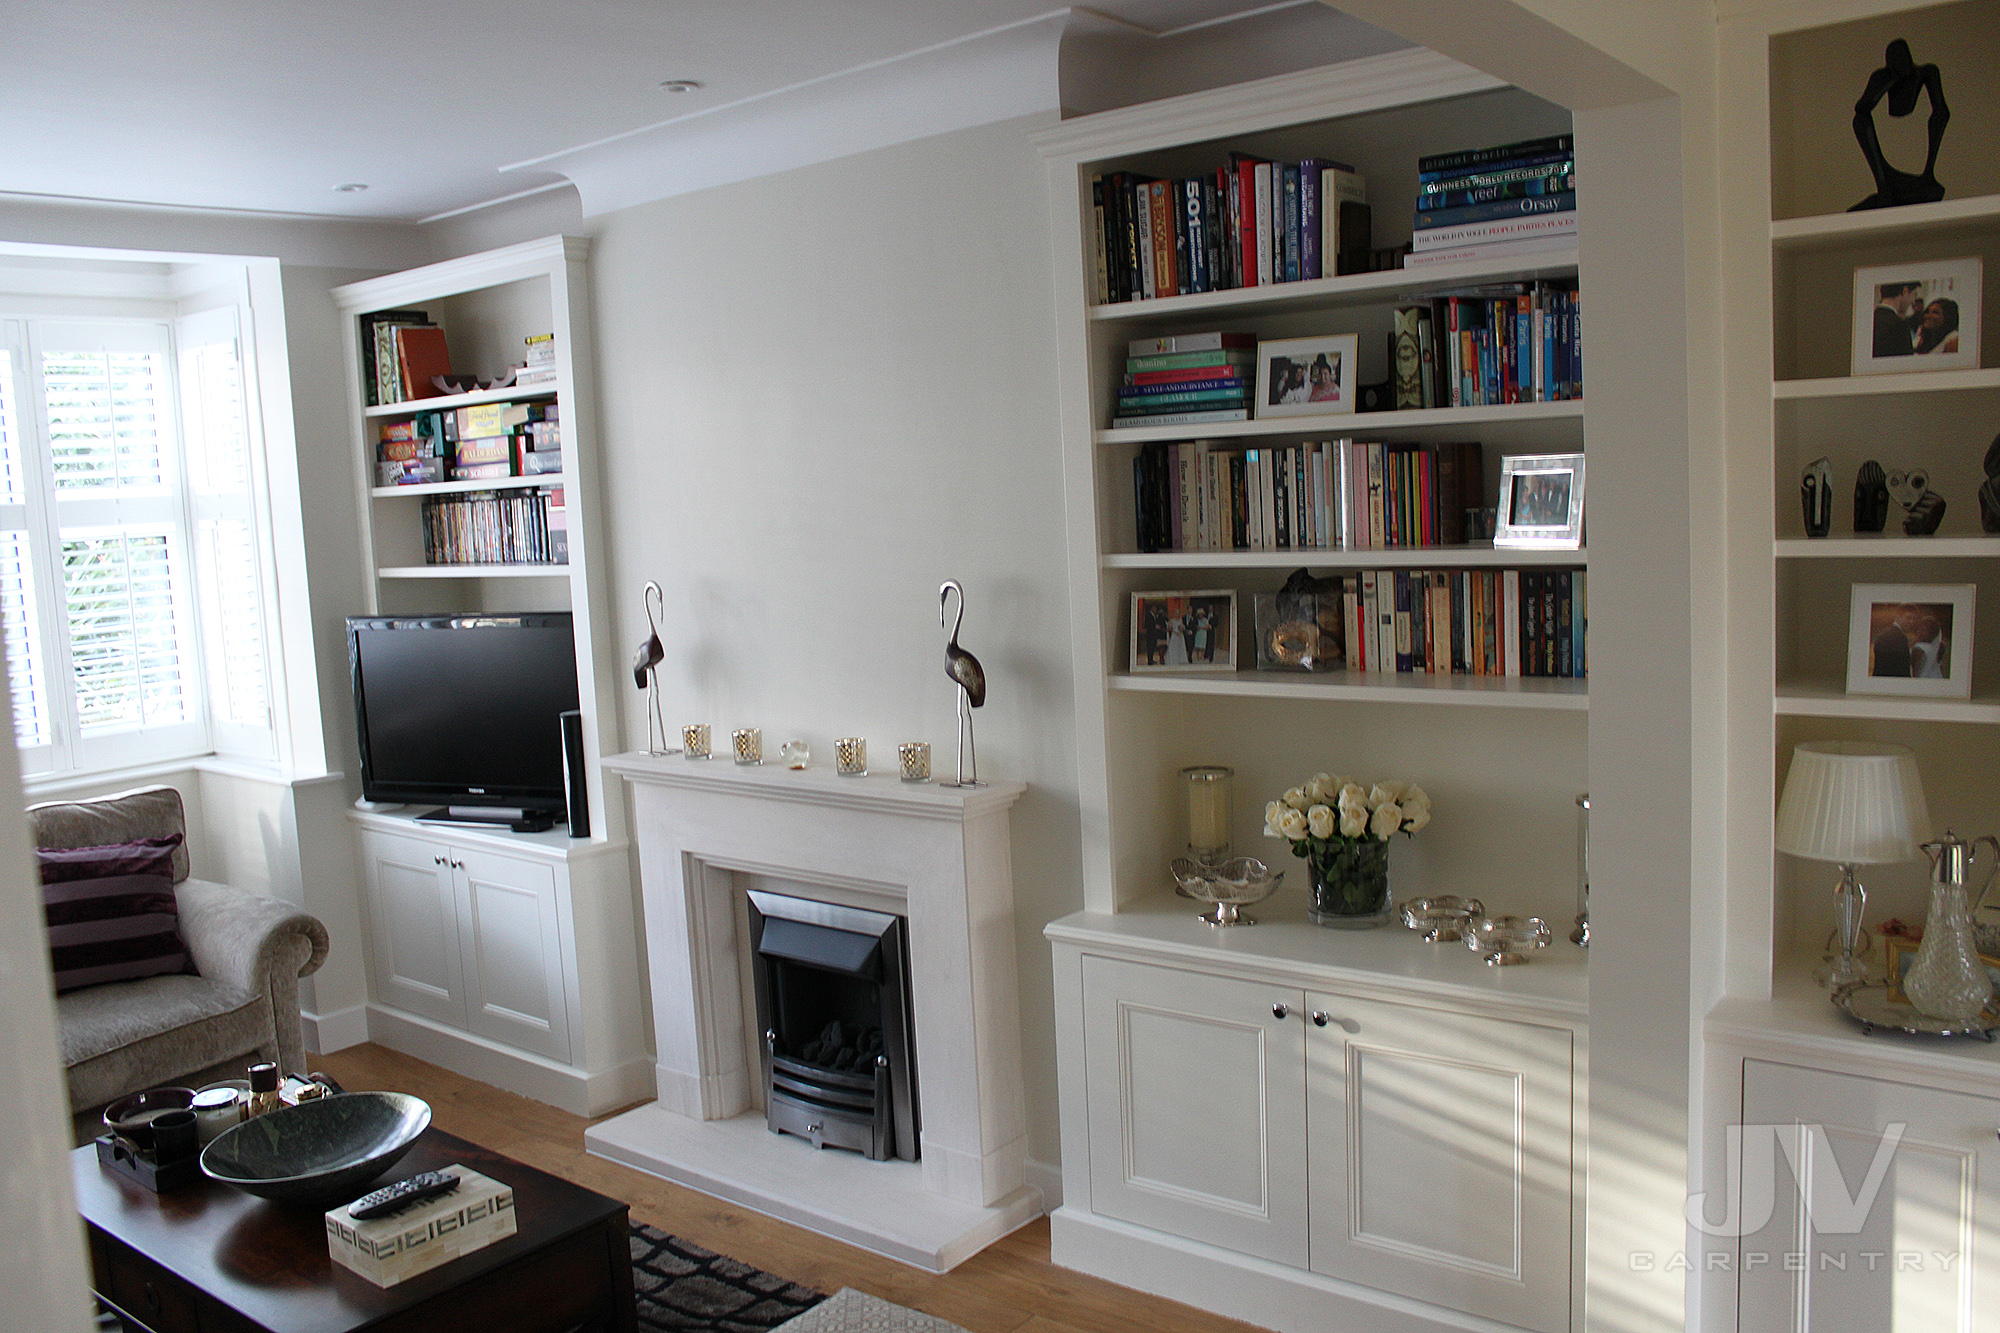 Living room alcoves shelving either side of the nice fireplace